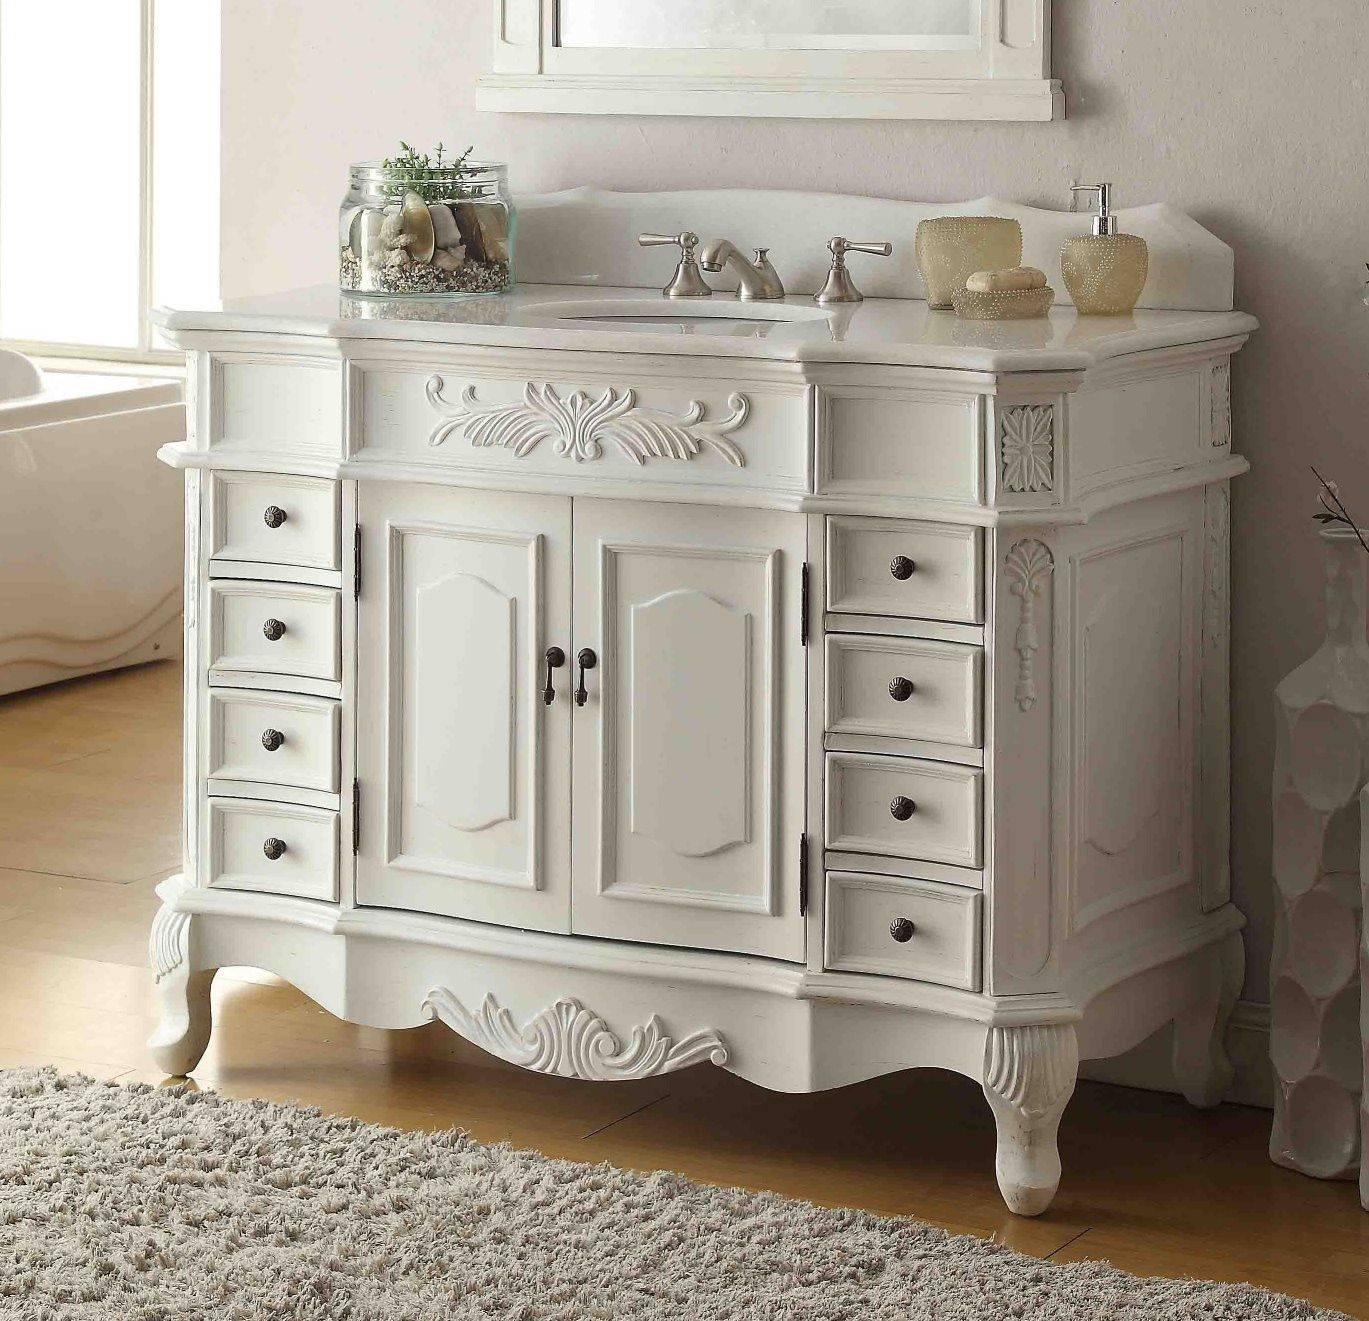 48 Benton Collection Antique White Morton Bathroom Sink Vanity